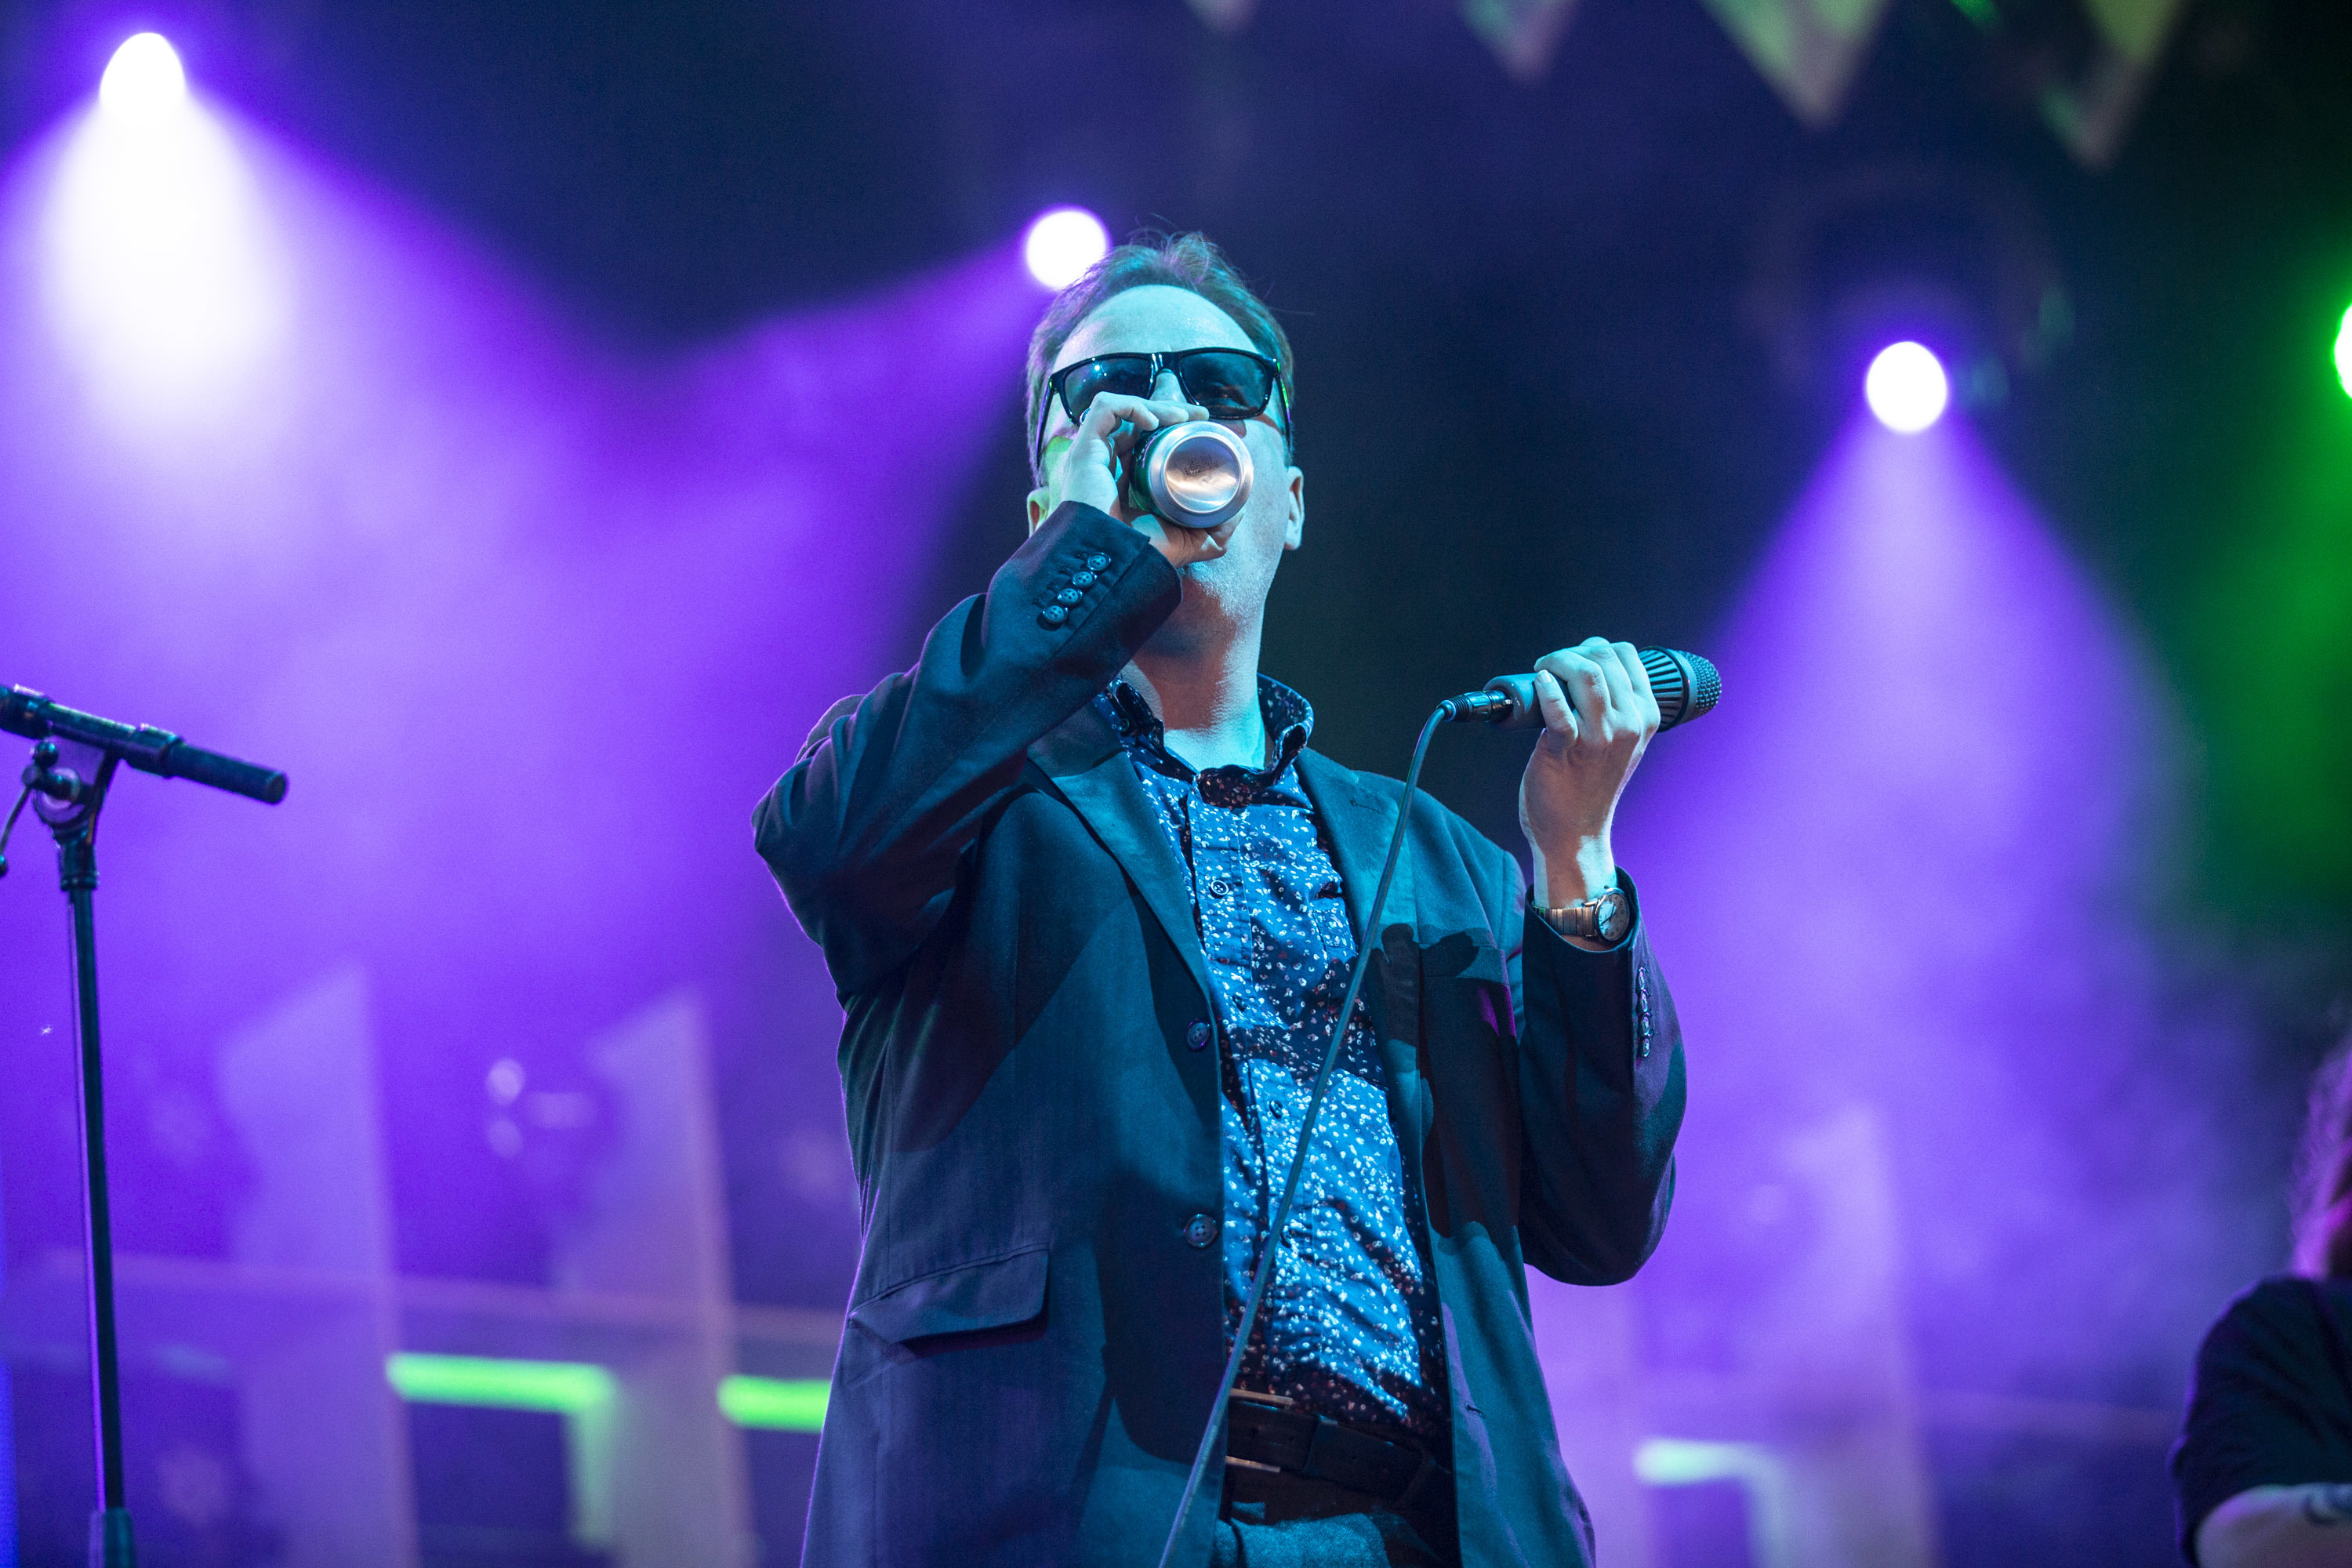 Gorillaz, Brockhampton, Nils Frahm and more kick off an eclectic first day at Lowlands 2018